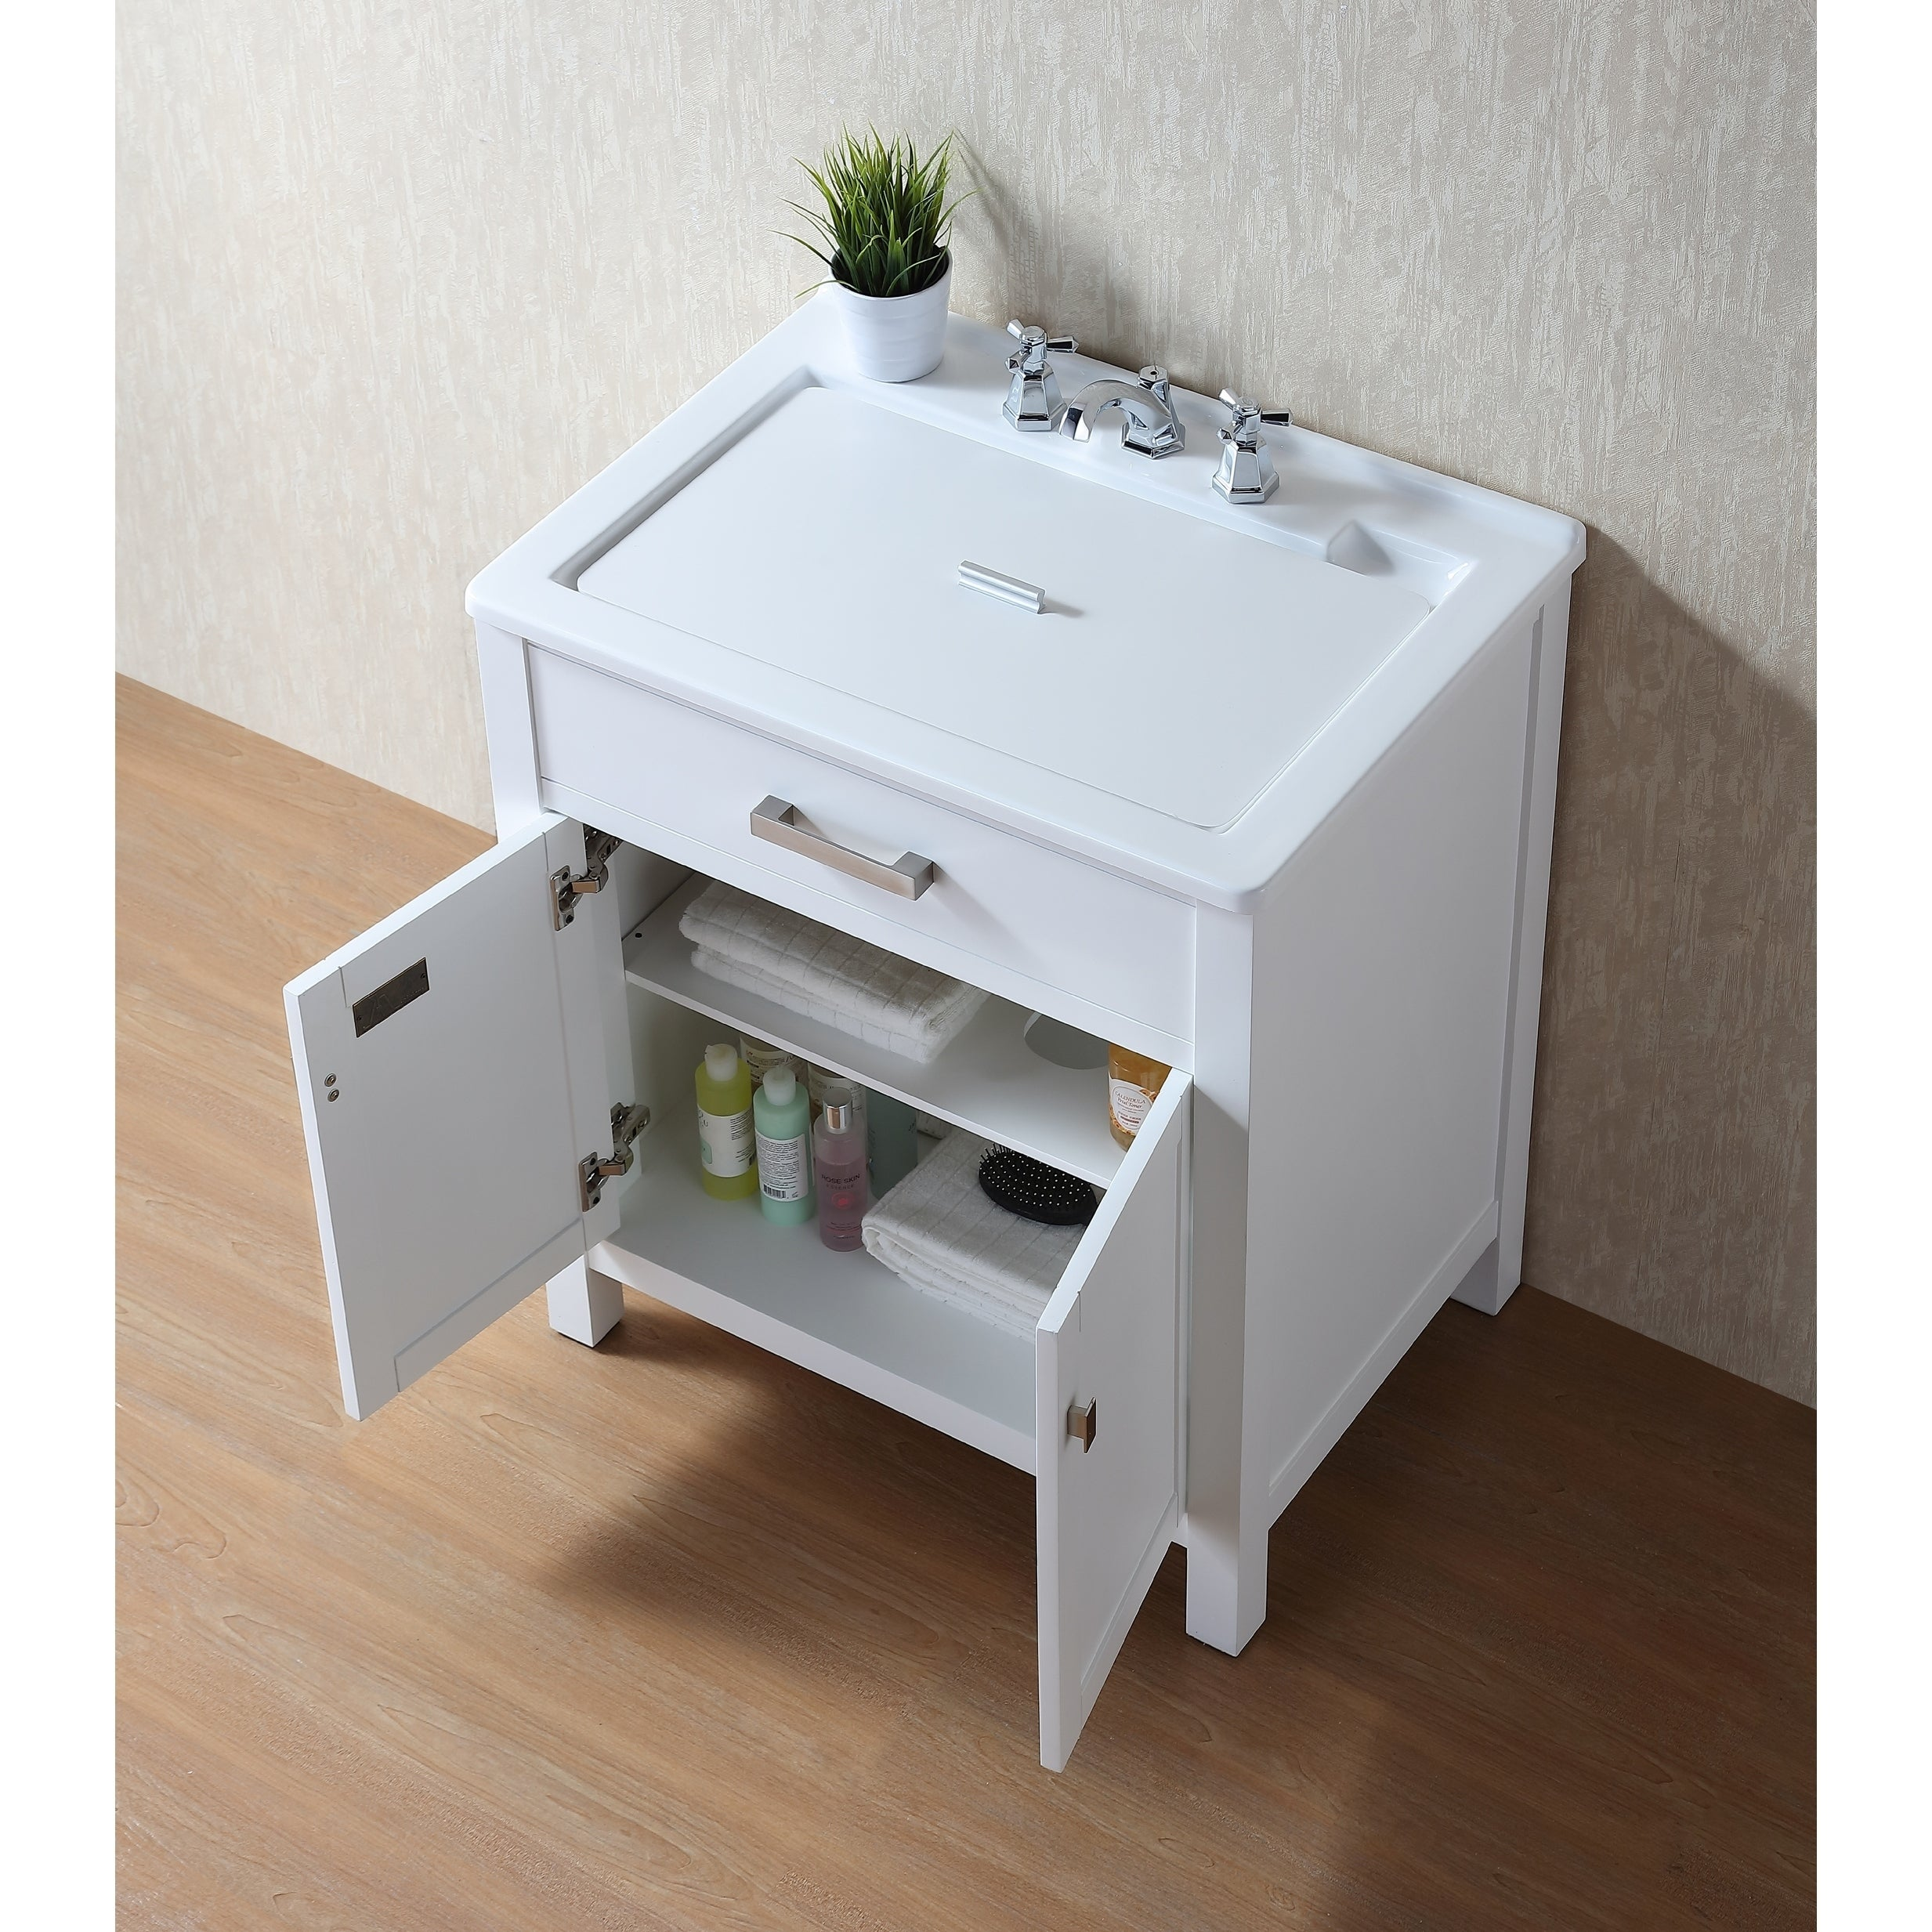 Stufurhome Radiant White Wood 30 Inch Laundry Sink Cabinet Free Shipping Today 21937798